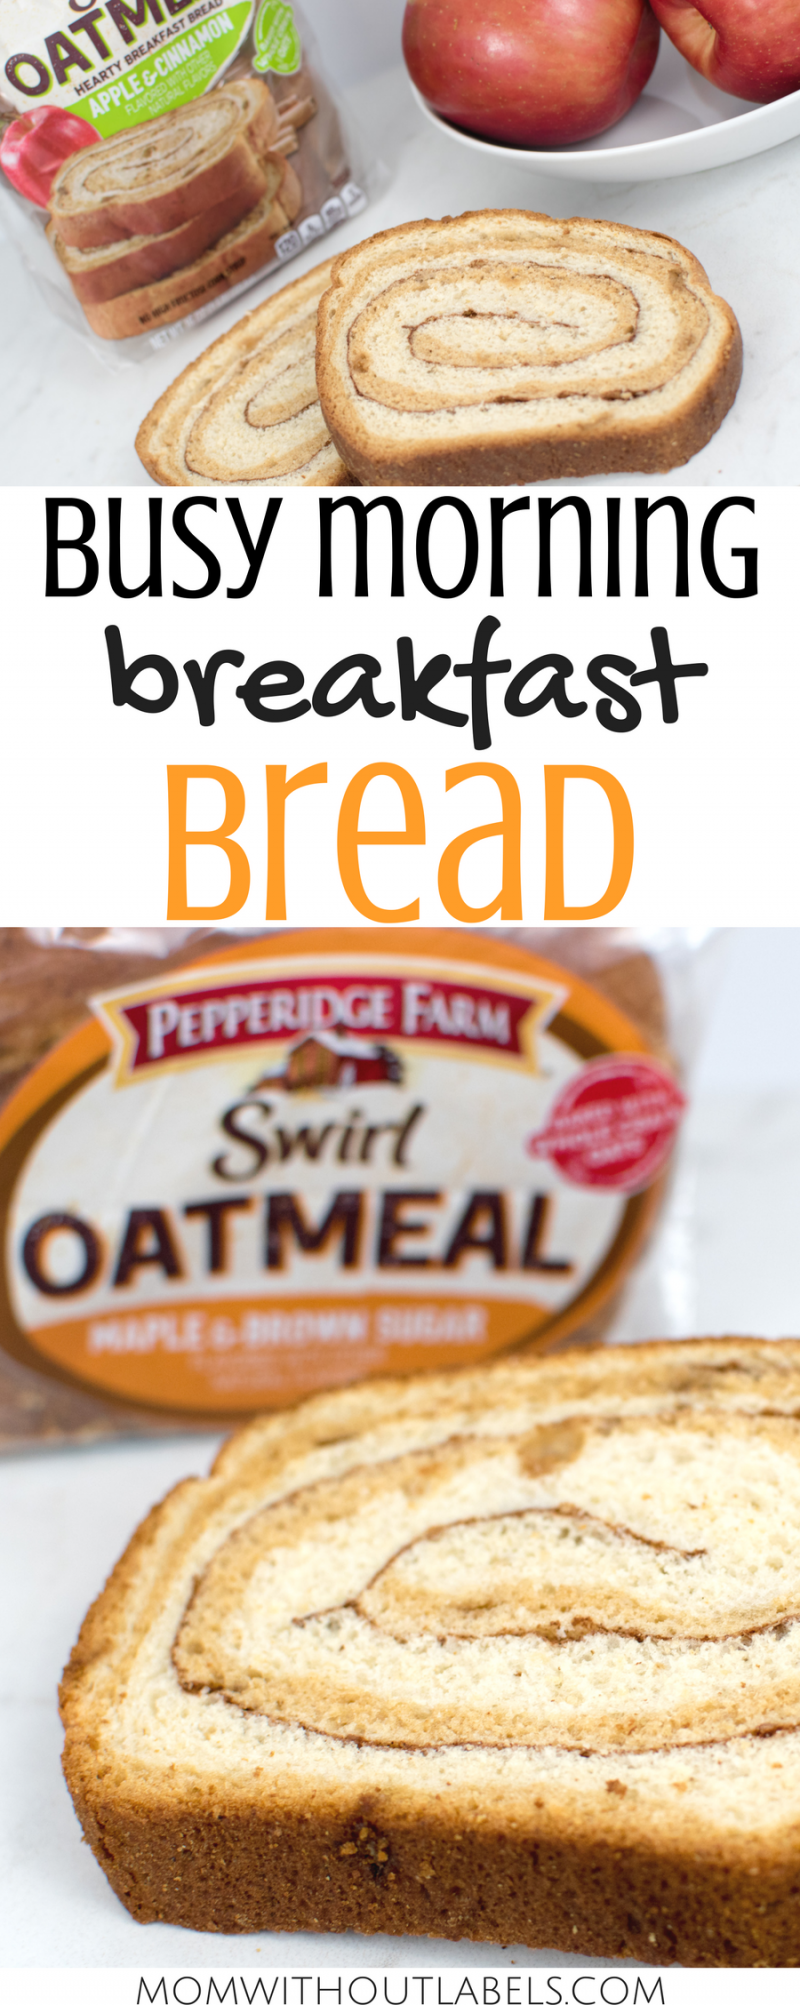 Busy Morning Breakfast Bread | Pepperidge Farm Swirl Oatmeal Bread